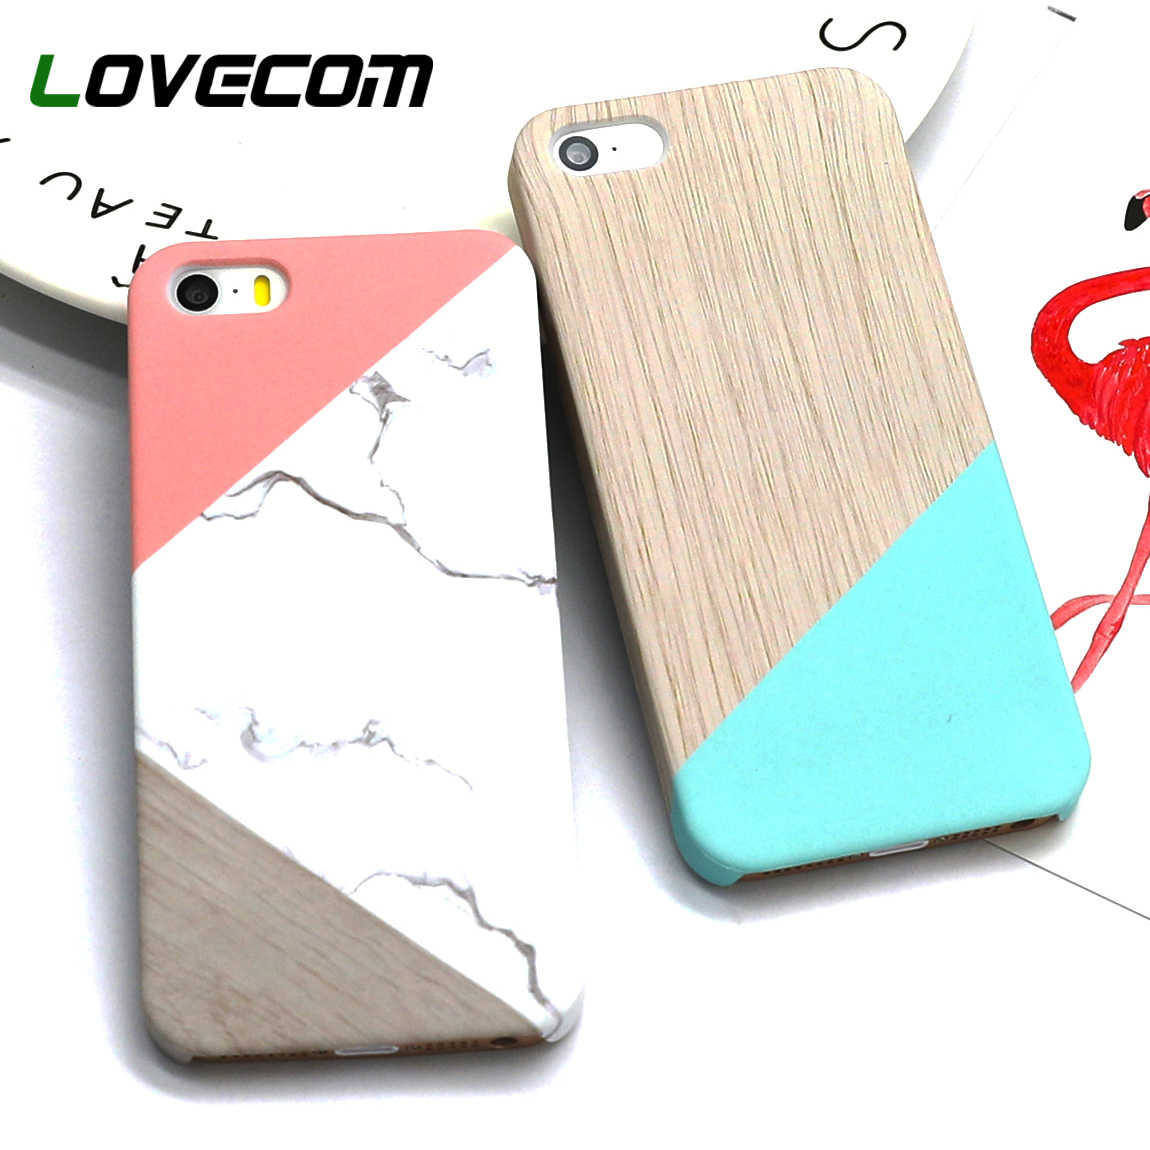 LOVECOM Geometric Splice Pattern Marble Hard PC Marble Phone Cases For iPhone XS Max XR 5 5S SE 6 6S 7 8 Plus X Case Back Cover